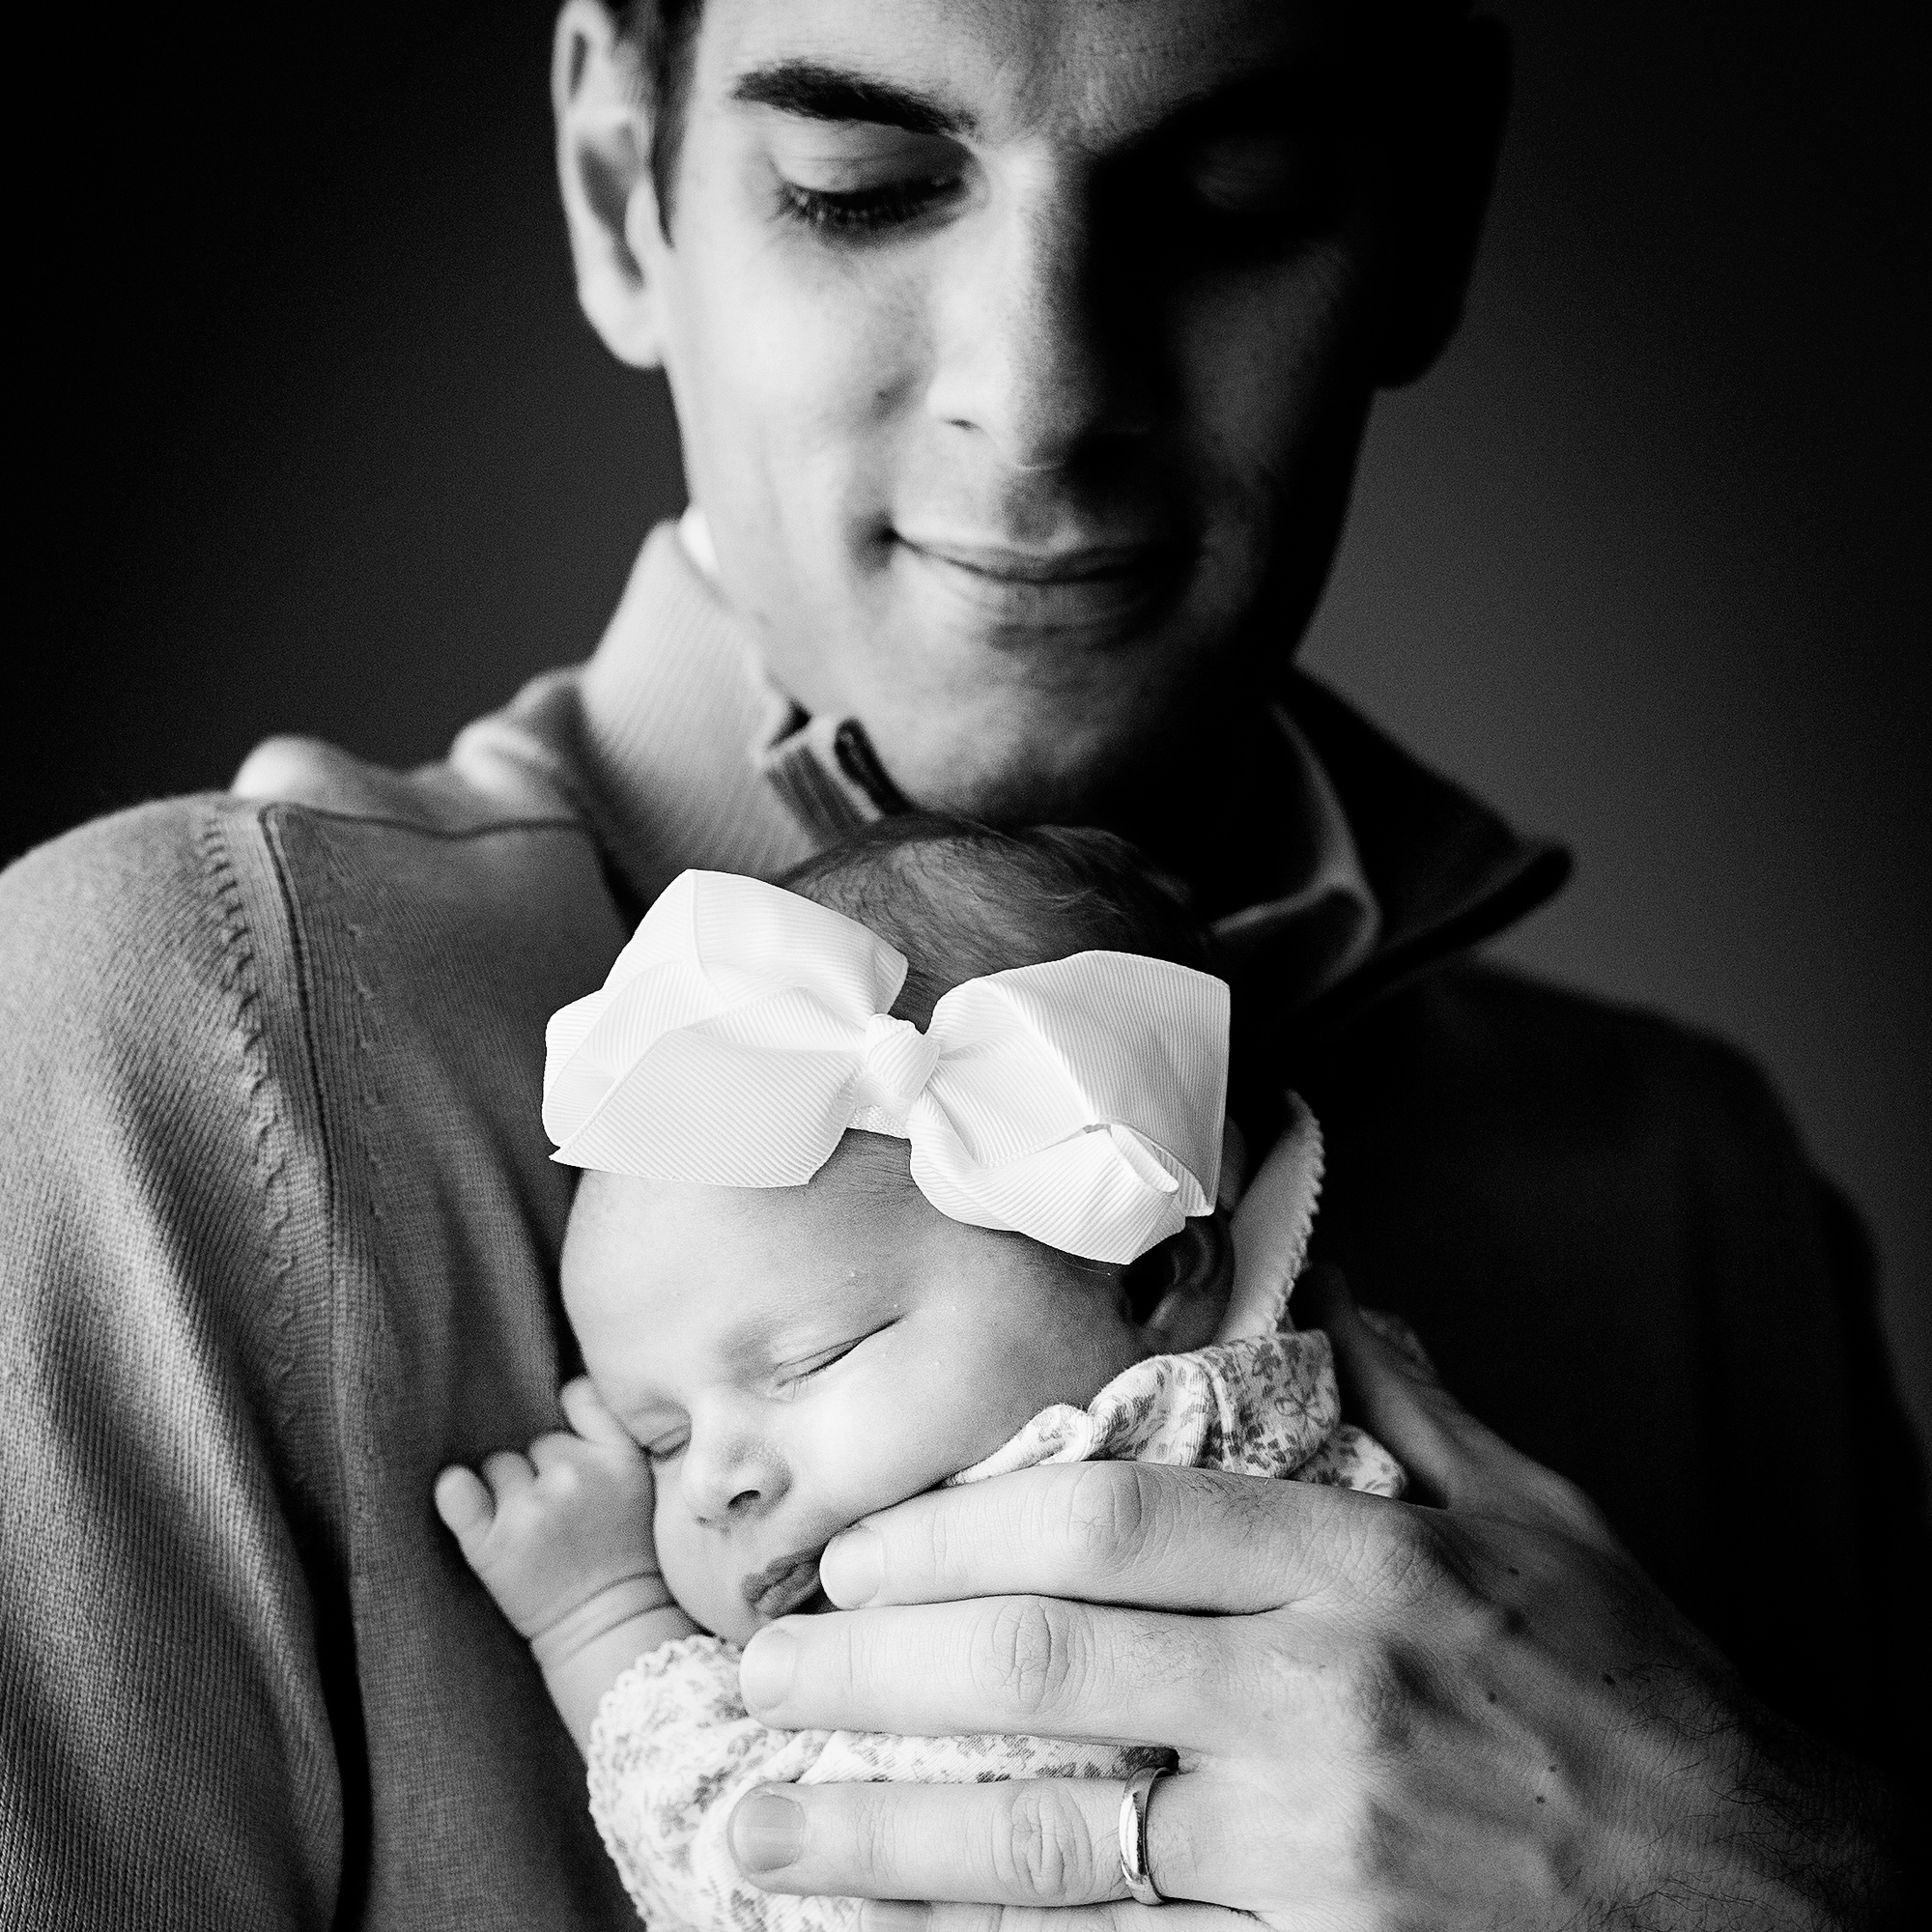 Seriously_Sabrina_Photography_Grand_Rapids_Michigan_Lifestyle_Newborn_Boersma23.jpg